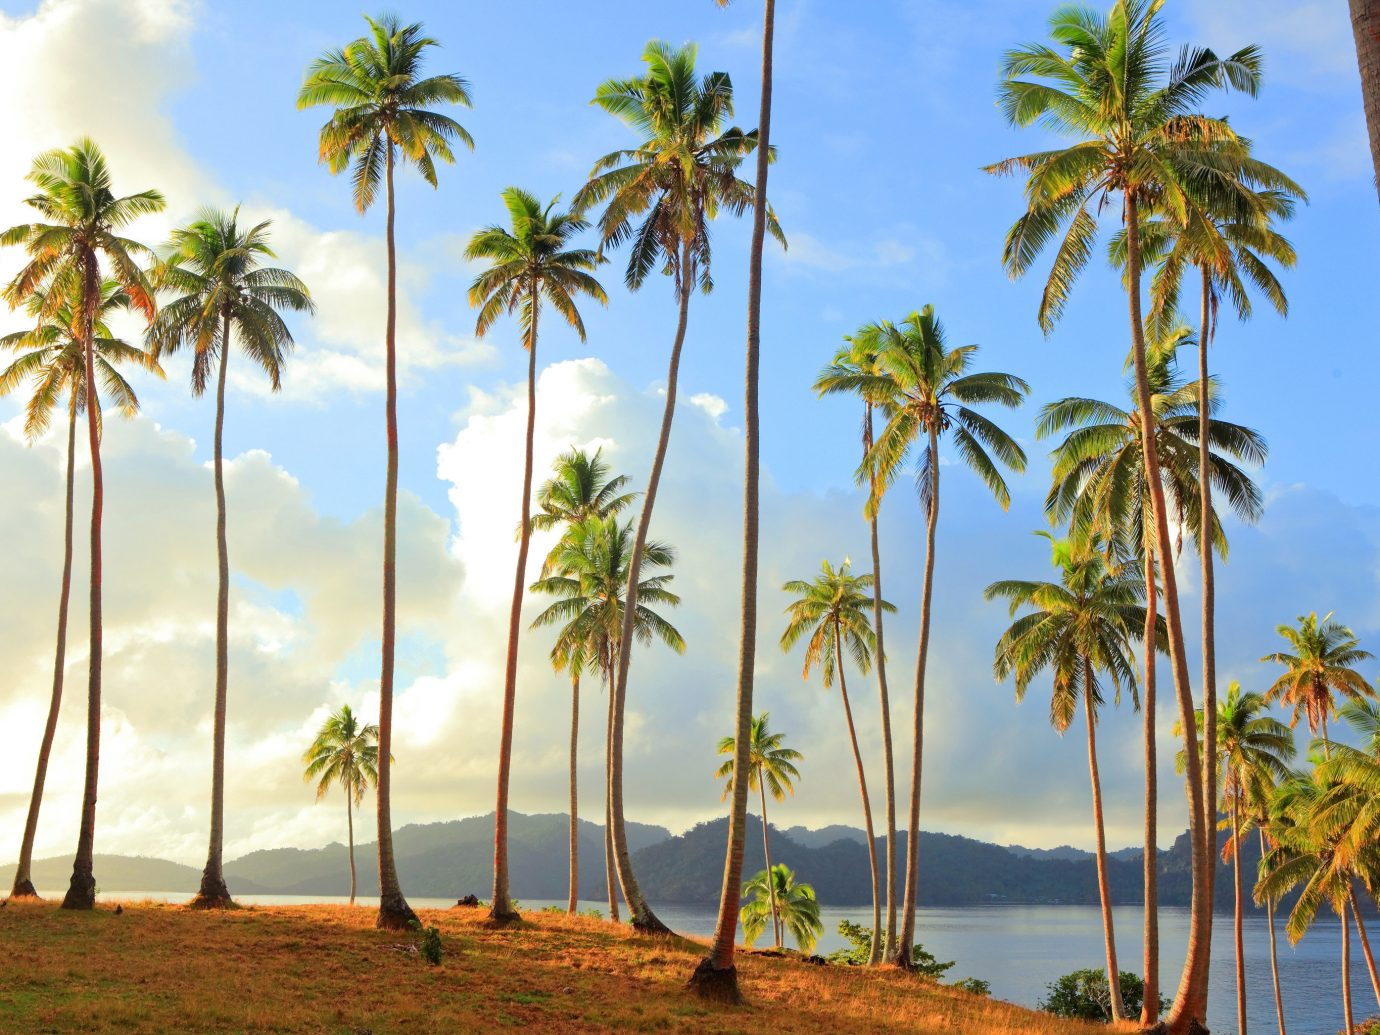 Islands Trip Ideas palm sky tree outdoor Beach water palm family vegetation plant tropics Ocean caribbean botany arecales land plant woody plant vacation Coast lined borassus flabellifer Sea flowering plant Jungle Island savanna sandy shade